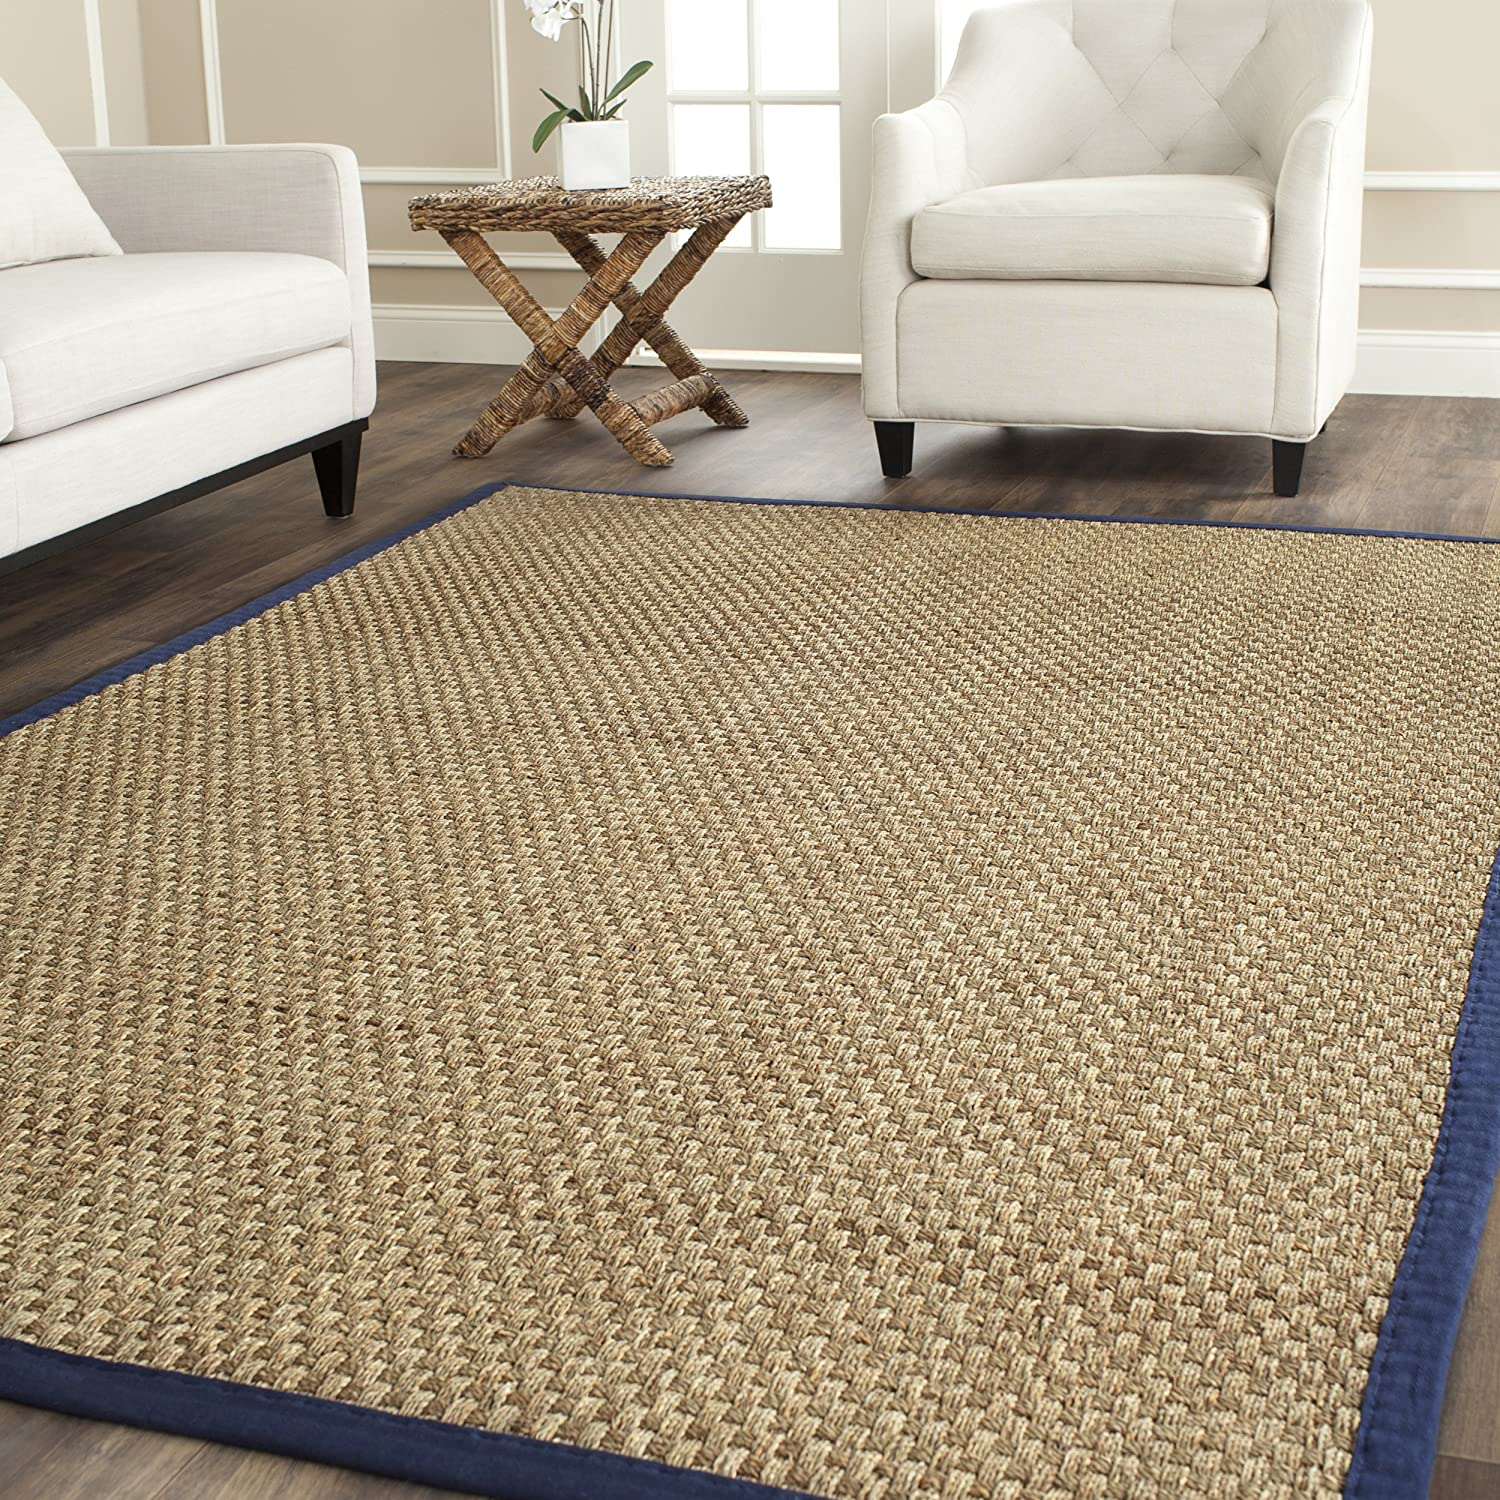 carpets sisal rugs collection safavieh soft fiber rug natural